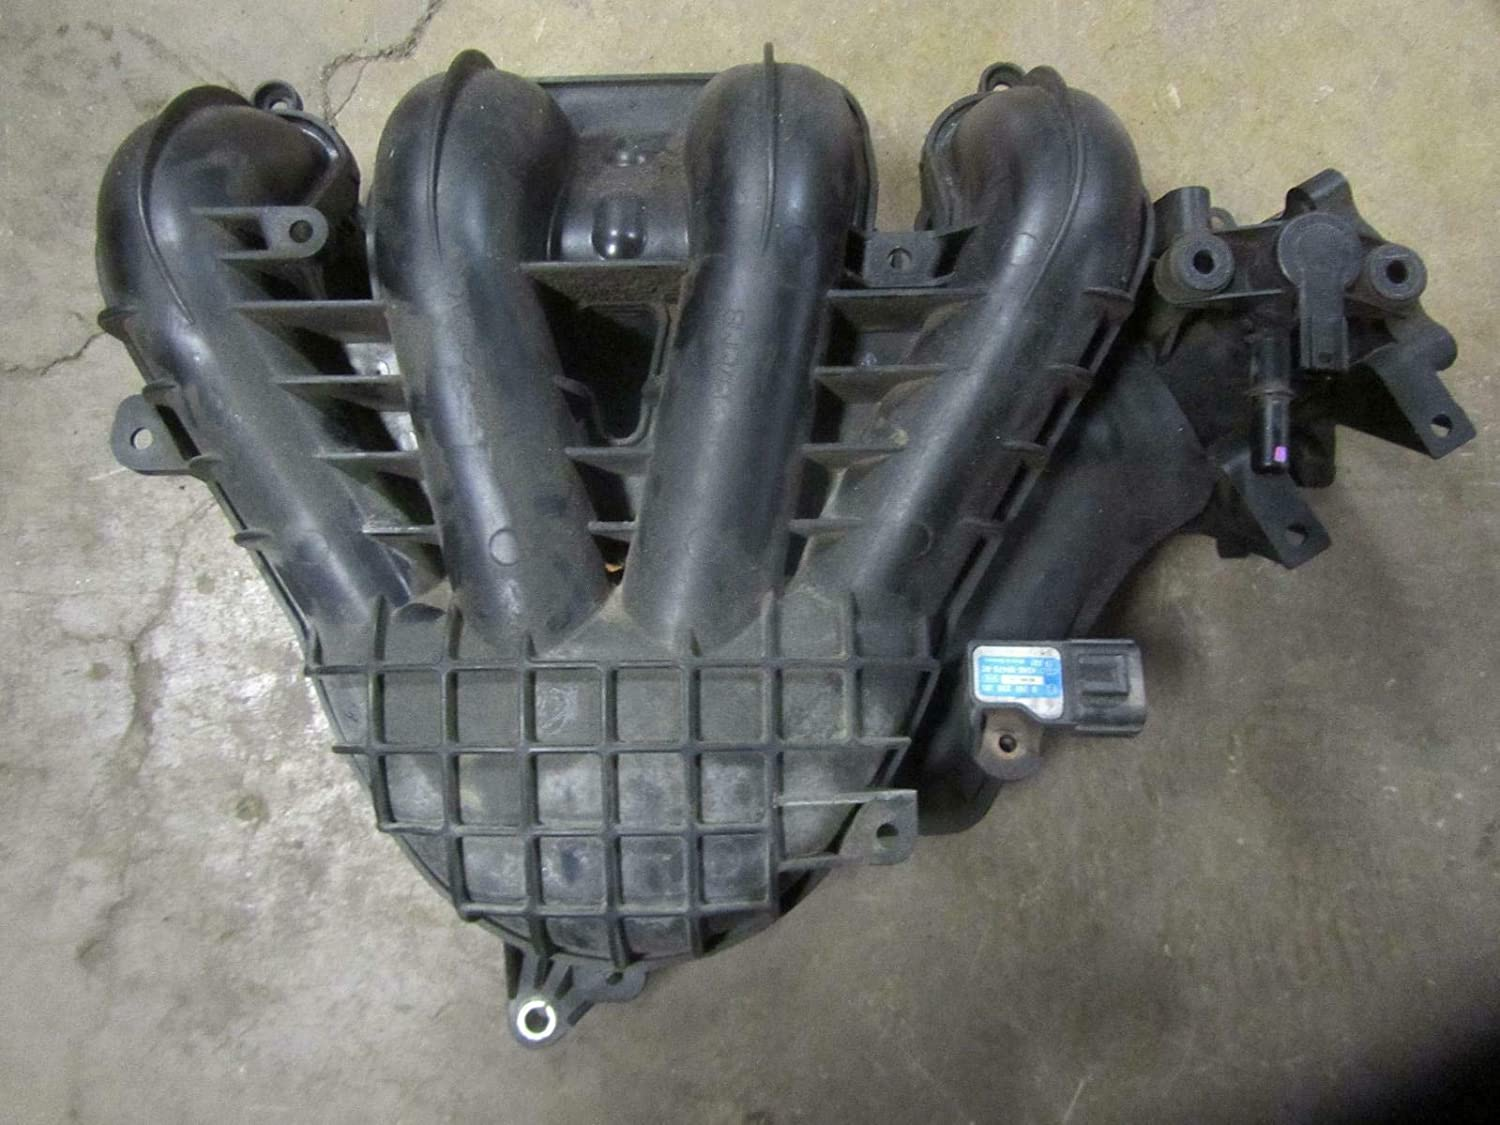 Popular brand in the world Morad favorite Parts 10-20 Compatible with Fusion Ford Intake Engine Mani